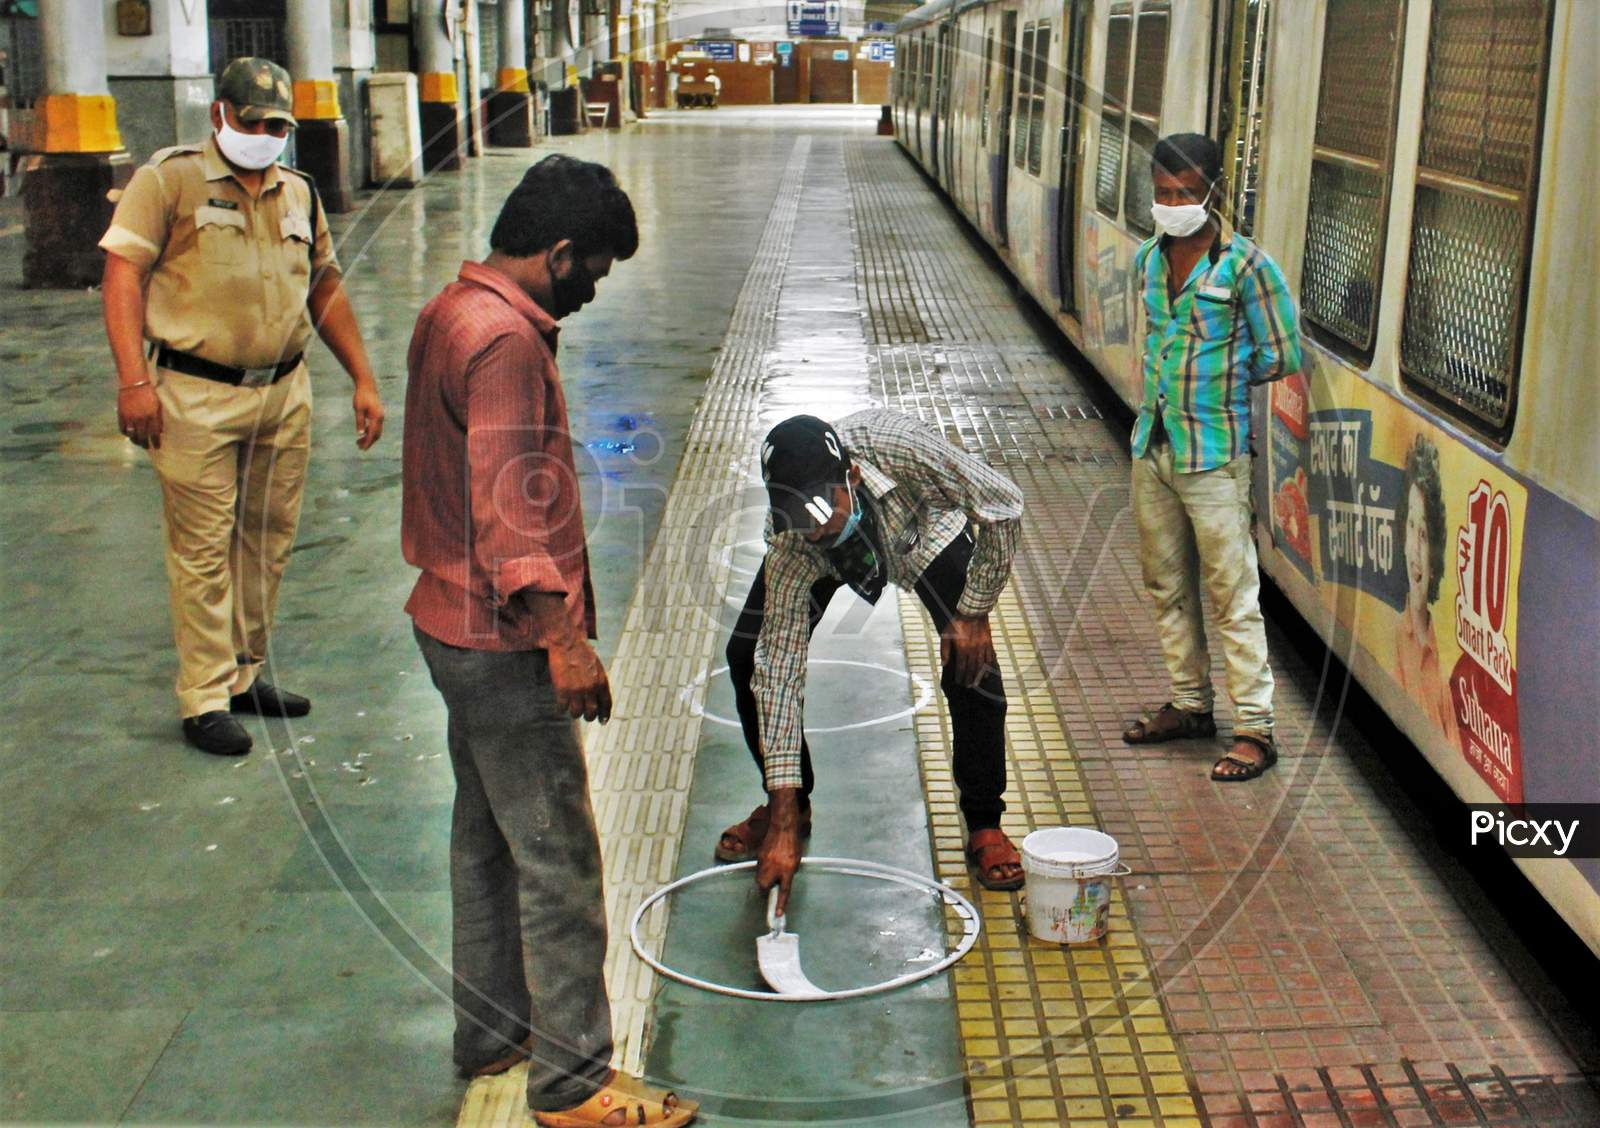 Workers Paint Circles On The Platform For The Passengers To Maintain Social Distancing After The Government Eased A Nationwide Lockdown Which Was Imposed As A Preventive Measure Against The Covid-19 Coronavirus, At The Cst Local Train Station, In Mumbai, India, On June 15, 2020.